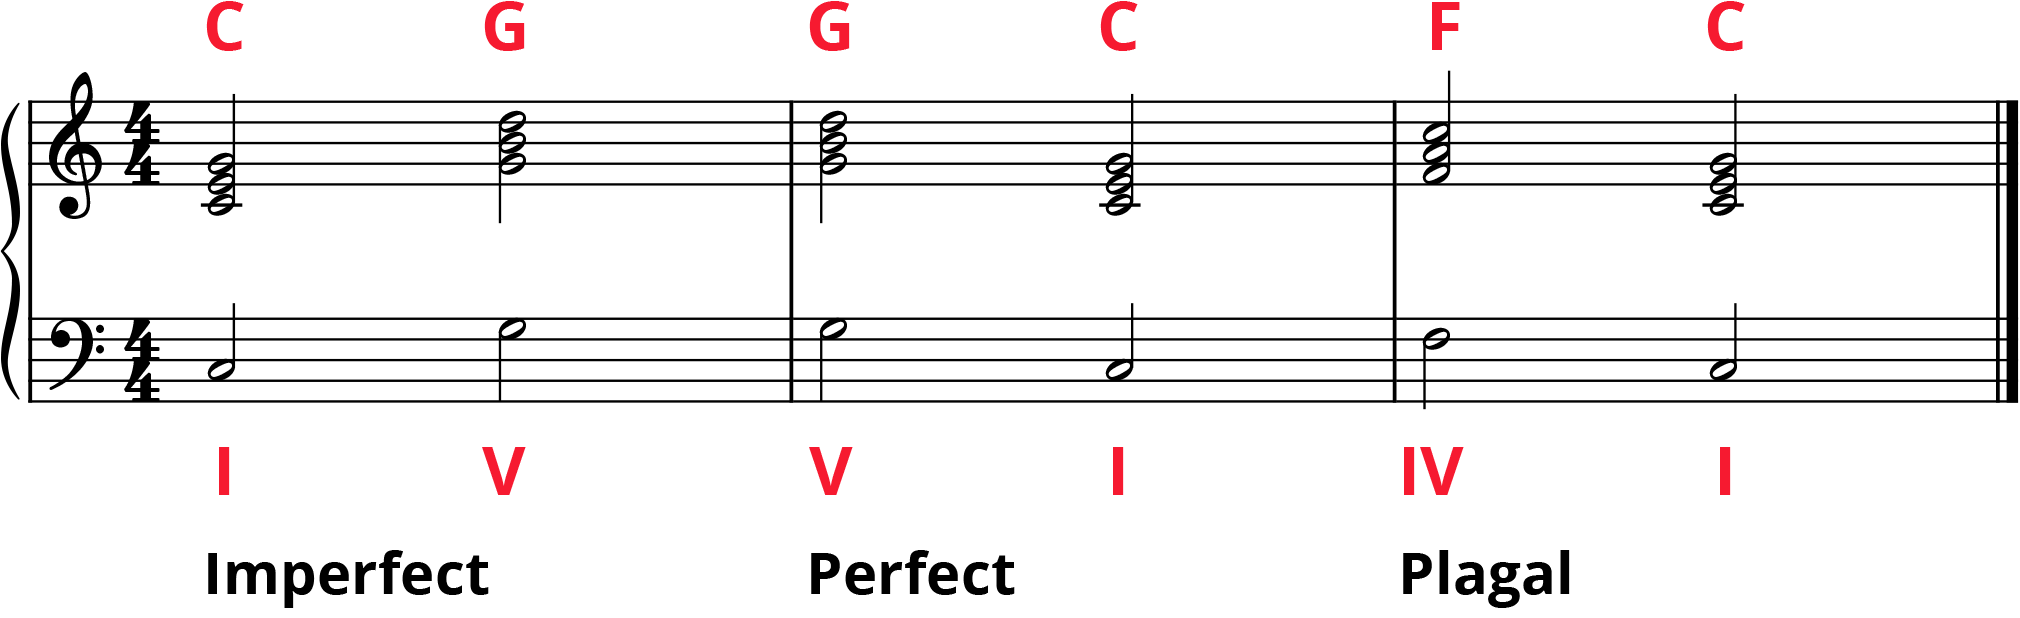 Imperfect, perfect, and plagal cadences on grand staff labelled I-V or C-G, V-I or G-C, and IV-I or F-C.